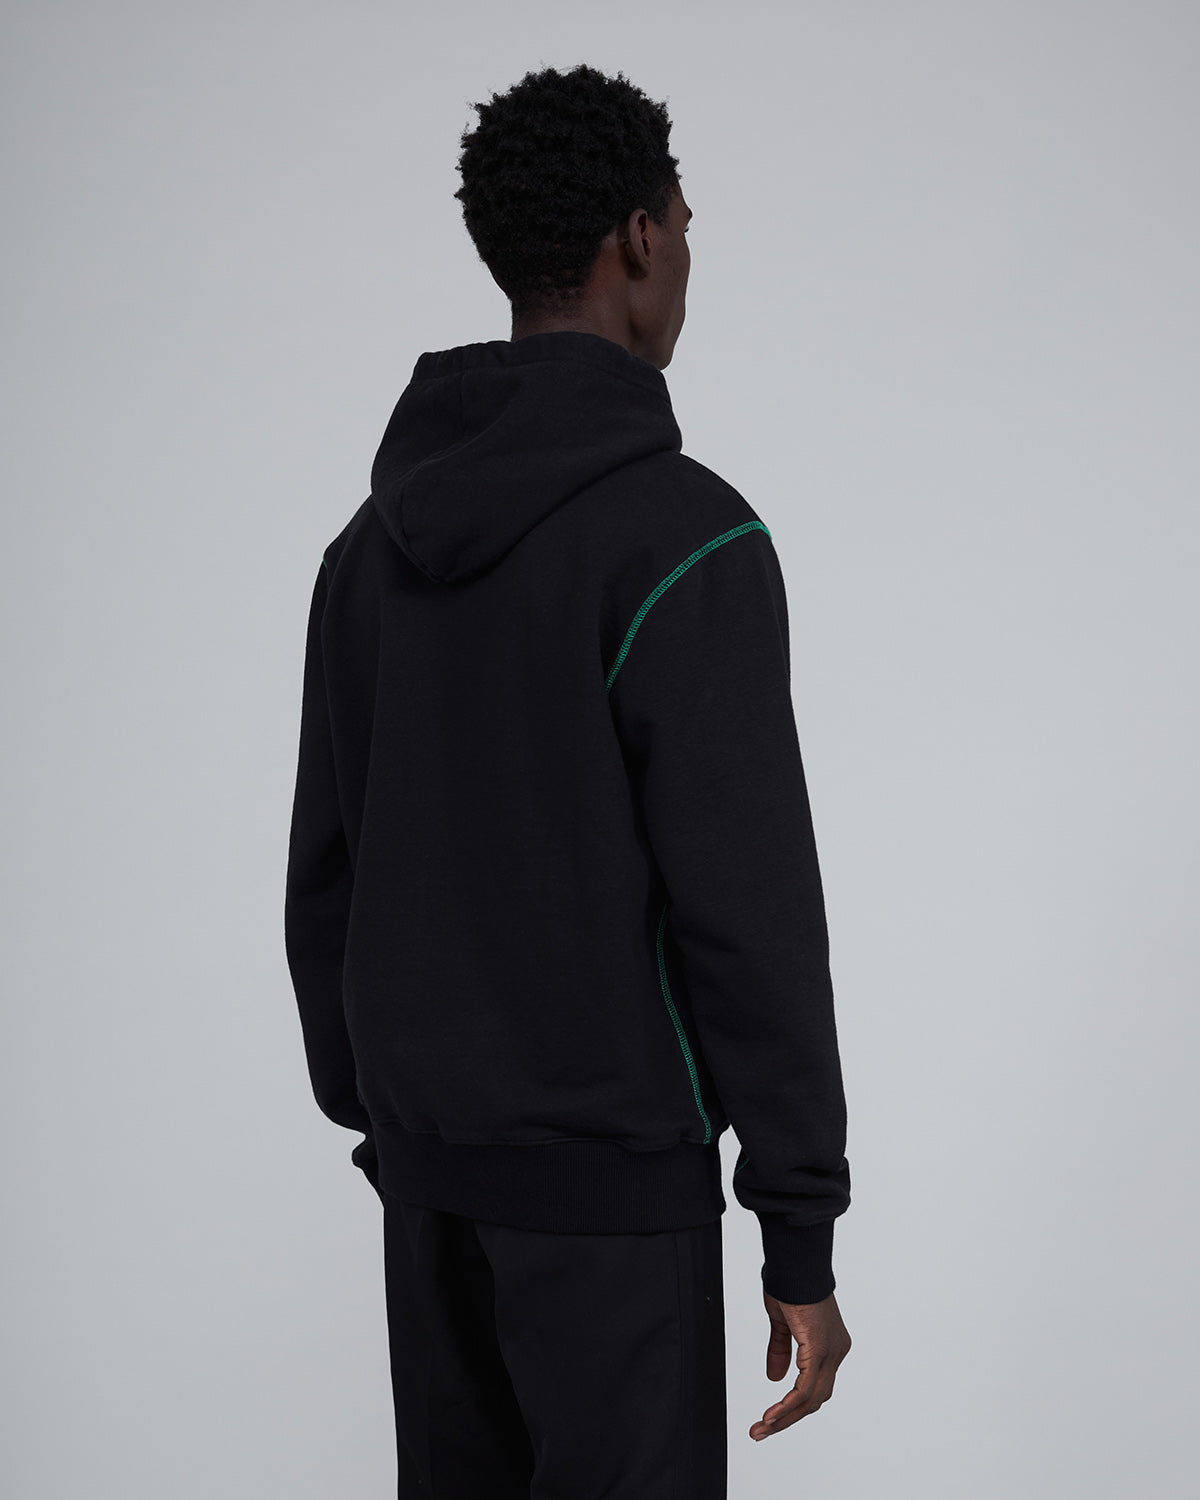 ØLÅF Italic Hoodie Black / Green, Portugese fabric, New Fleece Fabric, Post Wash, Fine Ribbed Color, 100% Cotton, Made in Portugal